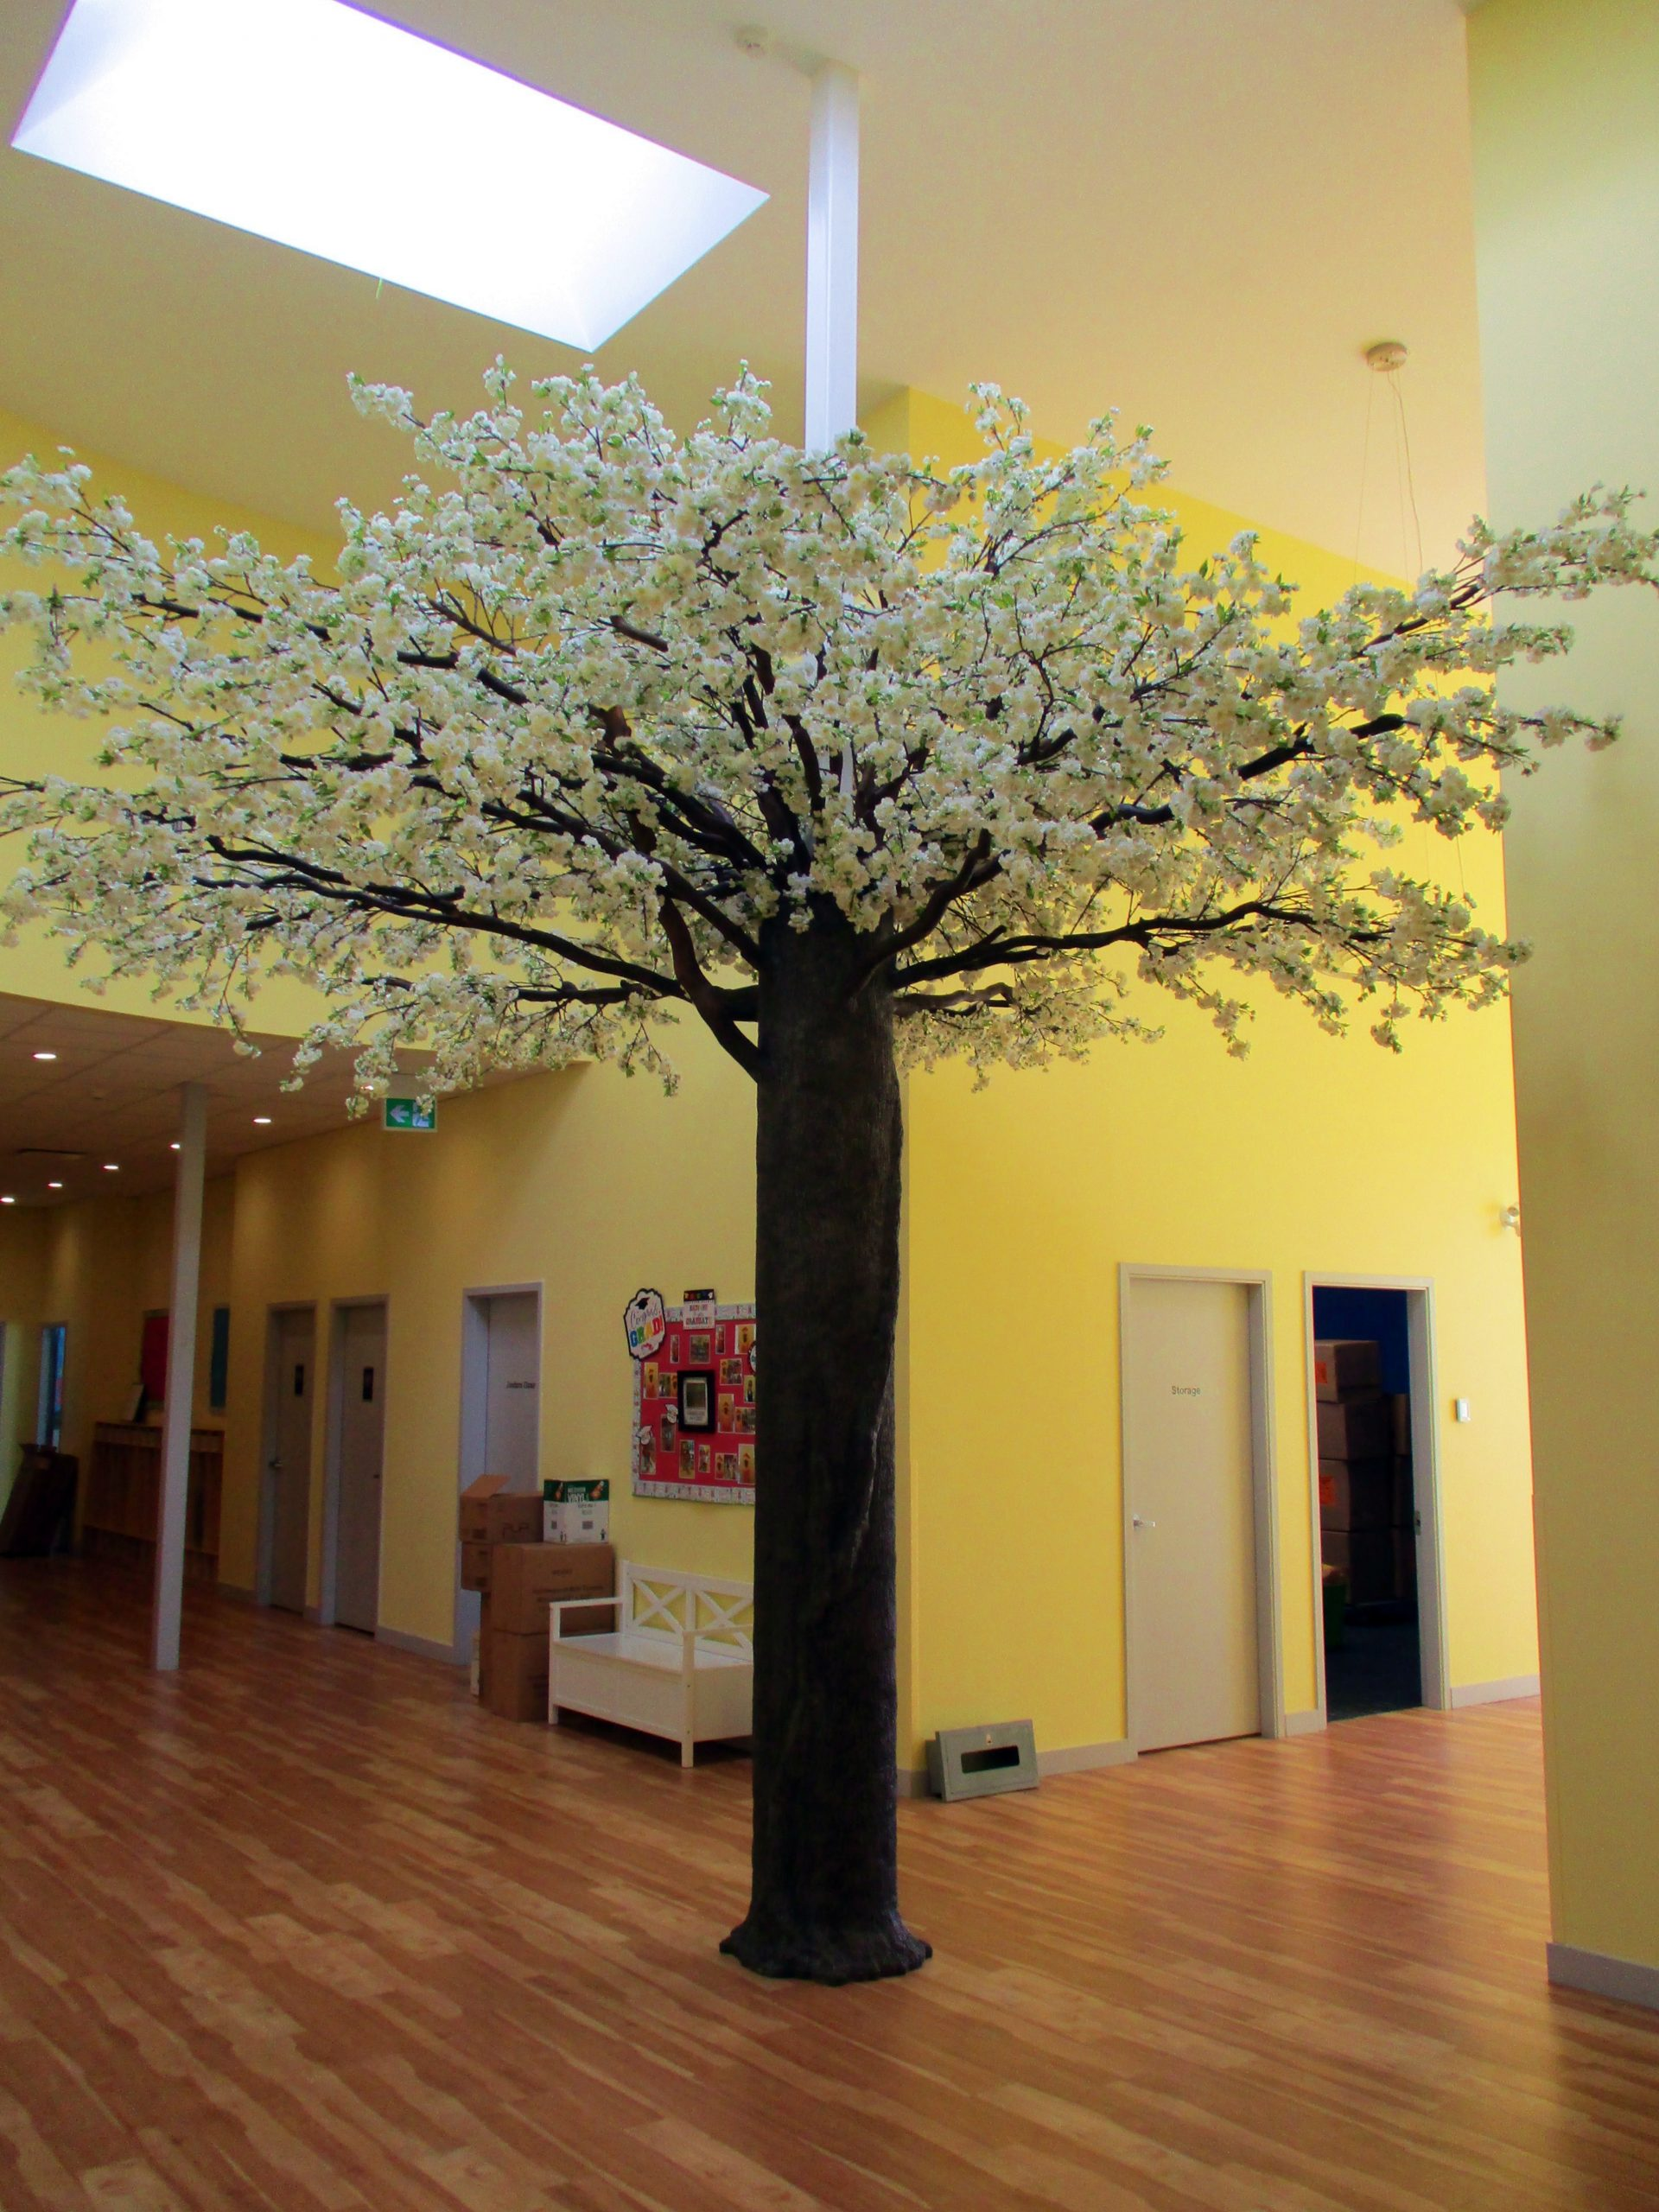 Cherry Blossom Tree as pillar surround in CEFA childcare facility, sculpted epoxy trunk. artificial white cherry blossoms